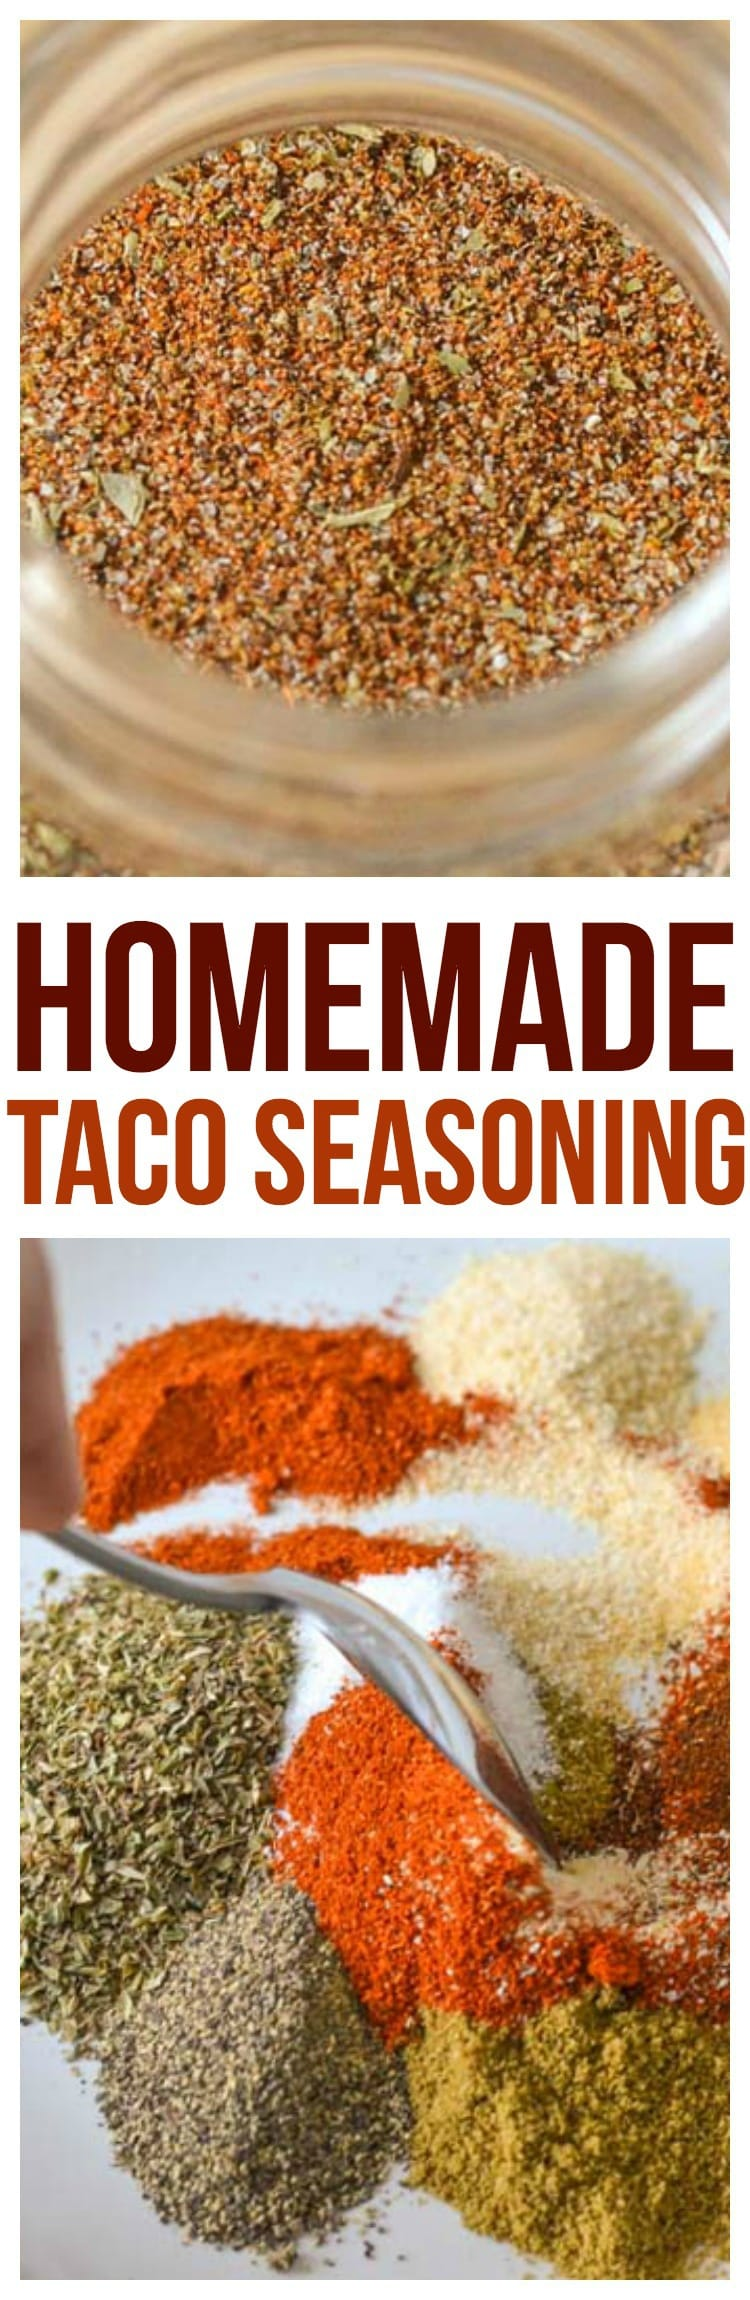 taco seasoning recipe homemade super quick and easy tex mex food at home, great for tacos, burritos, taco soup, seasoning chicken and more